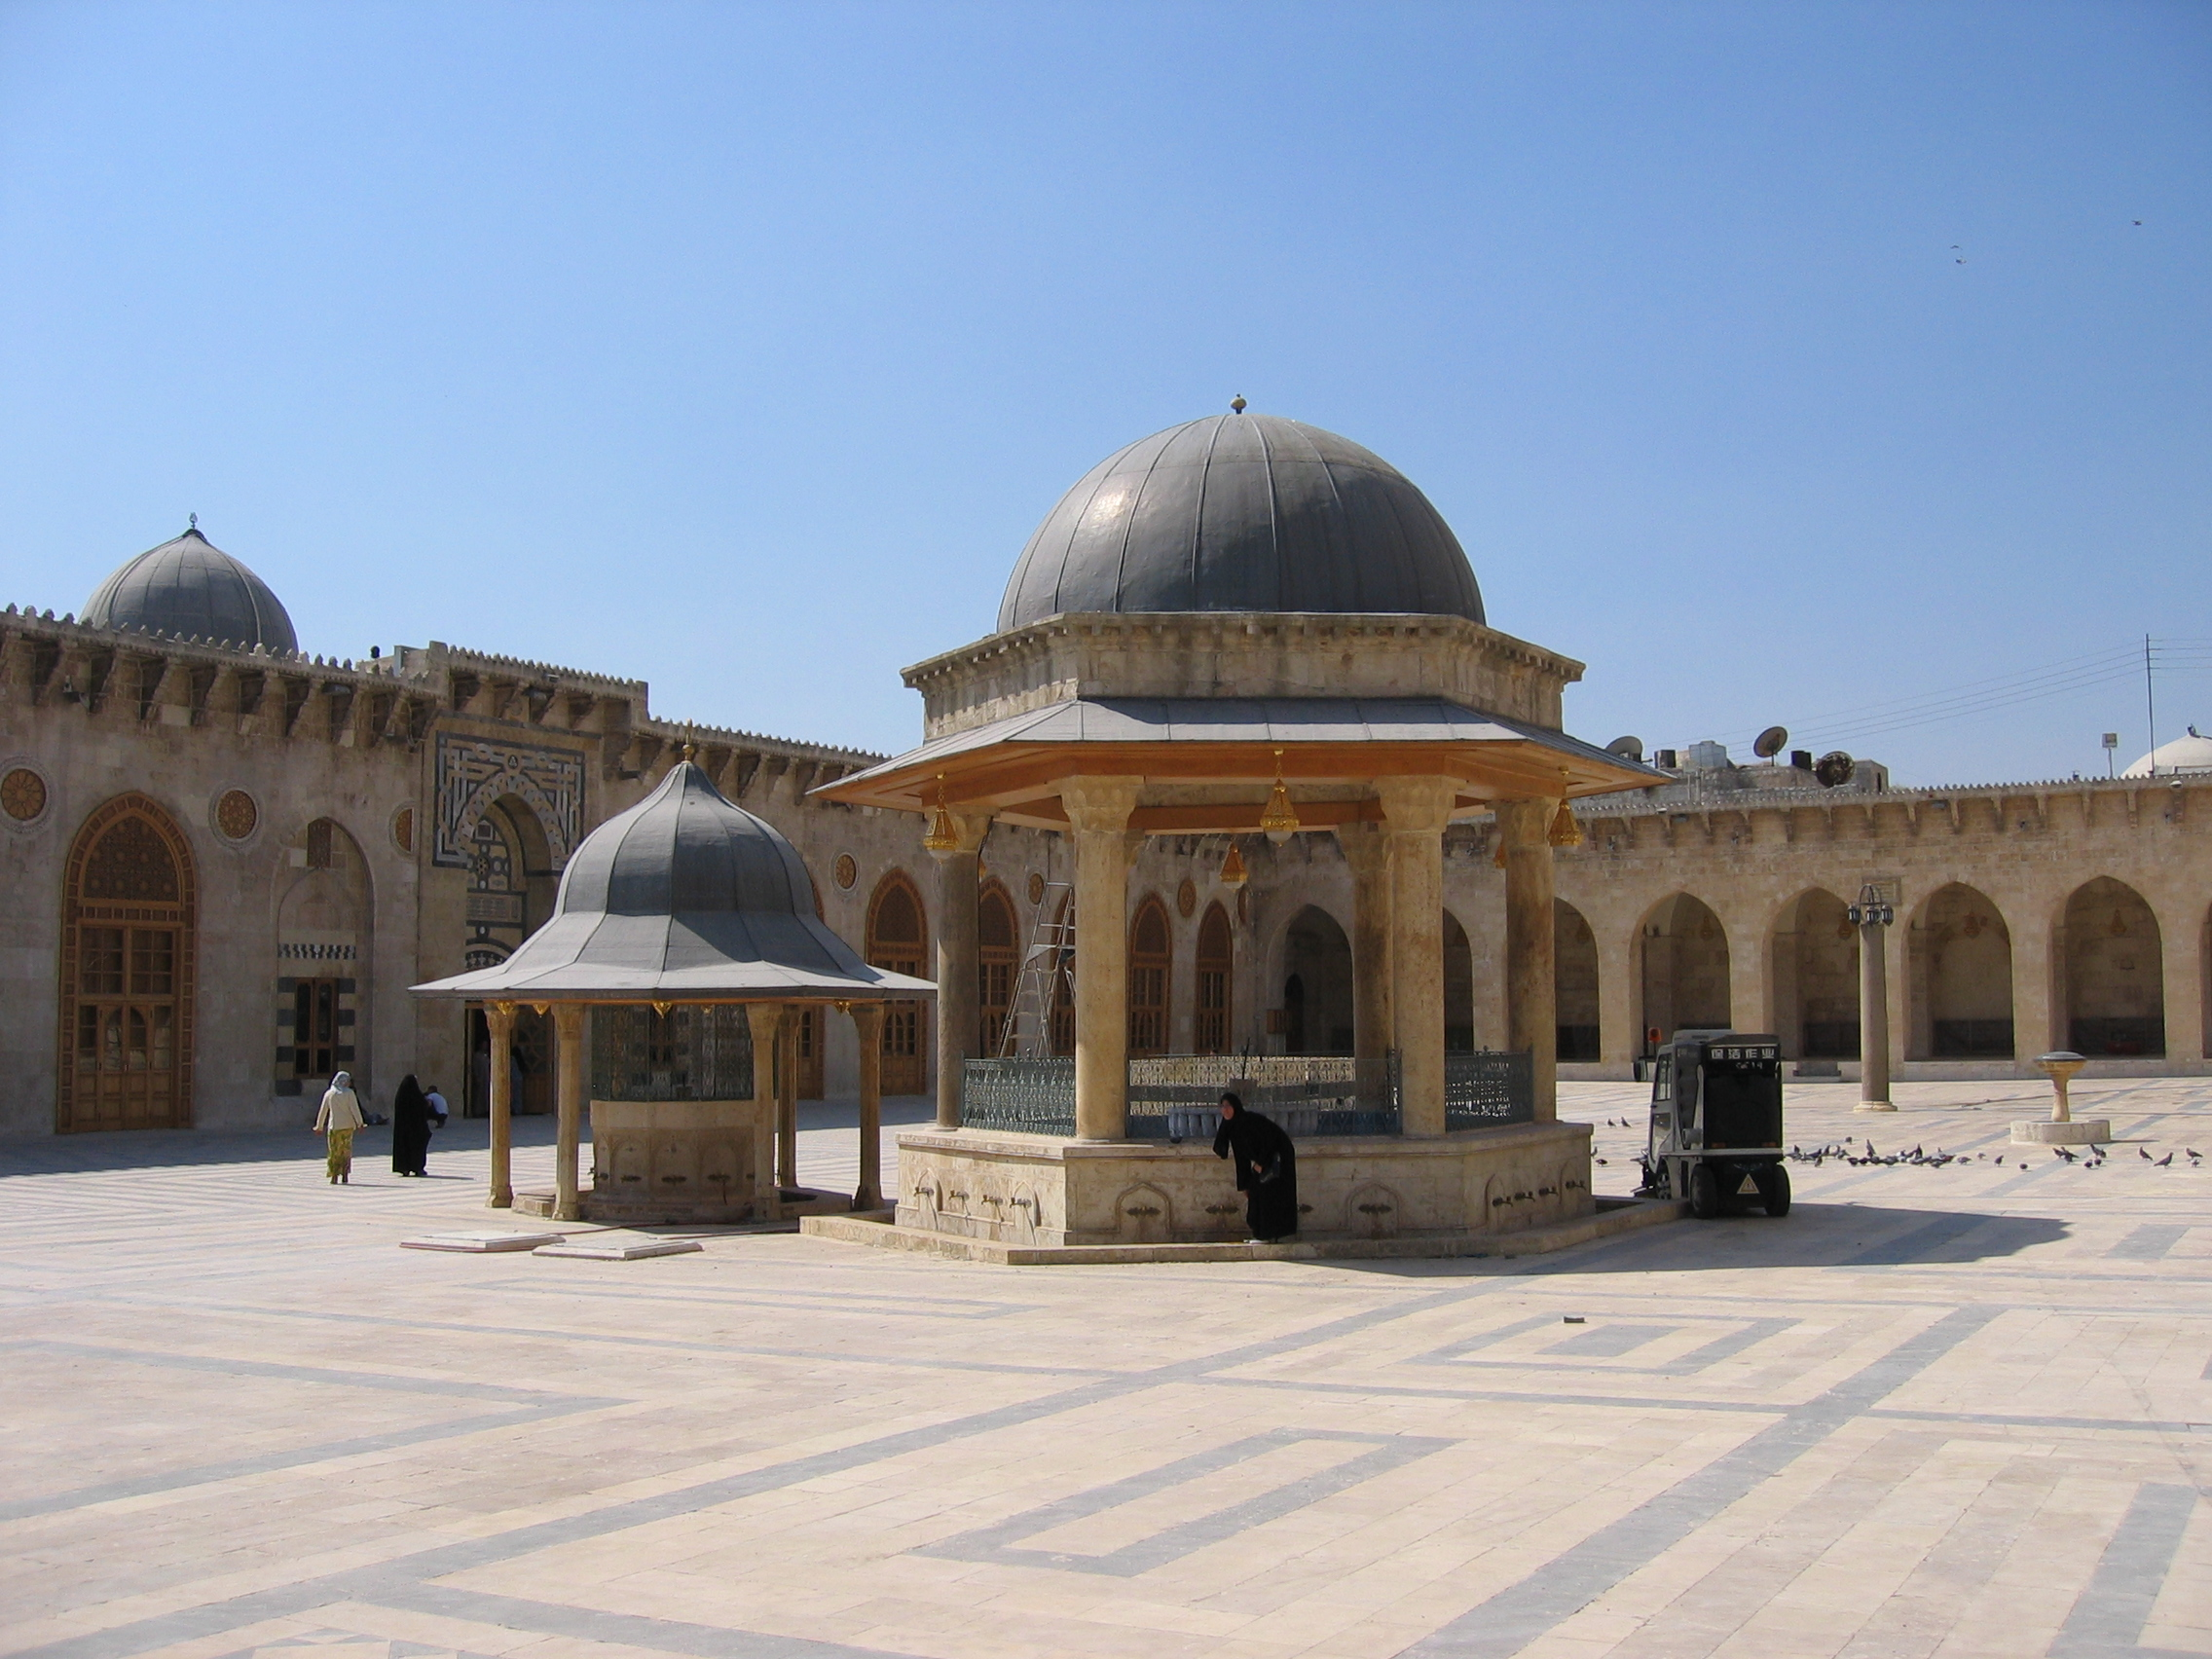 Great Mosque of Aleppo, Aleppo